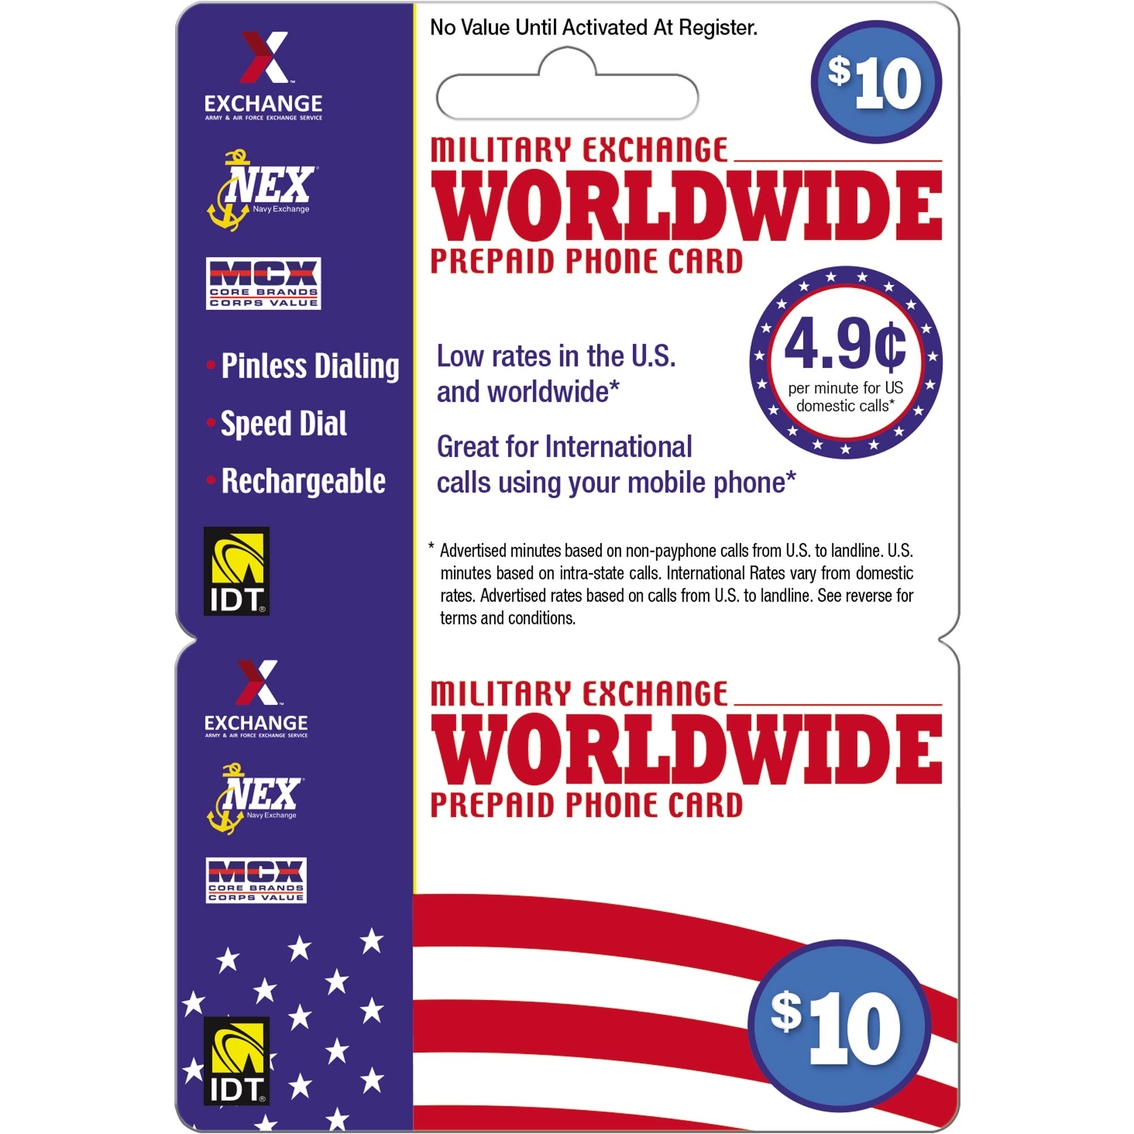 Idt Exchange Worldwide $10 Long Distance Card | Phone Cards